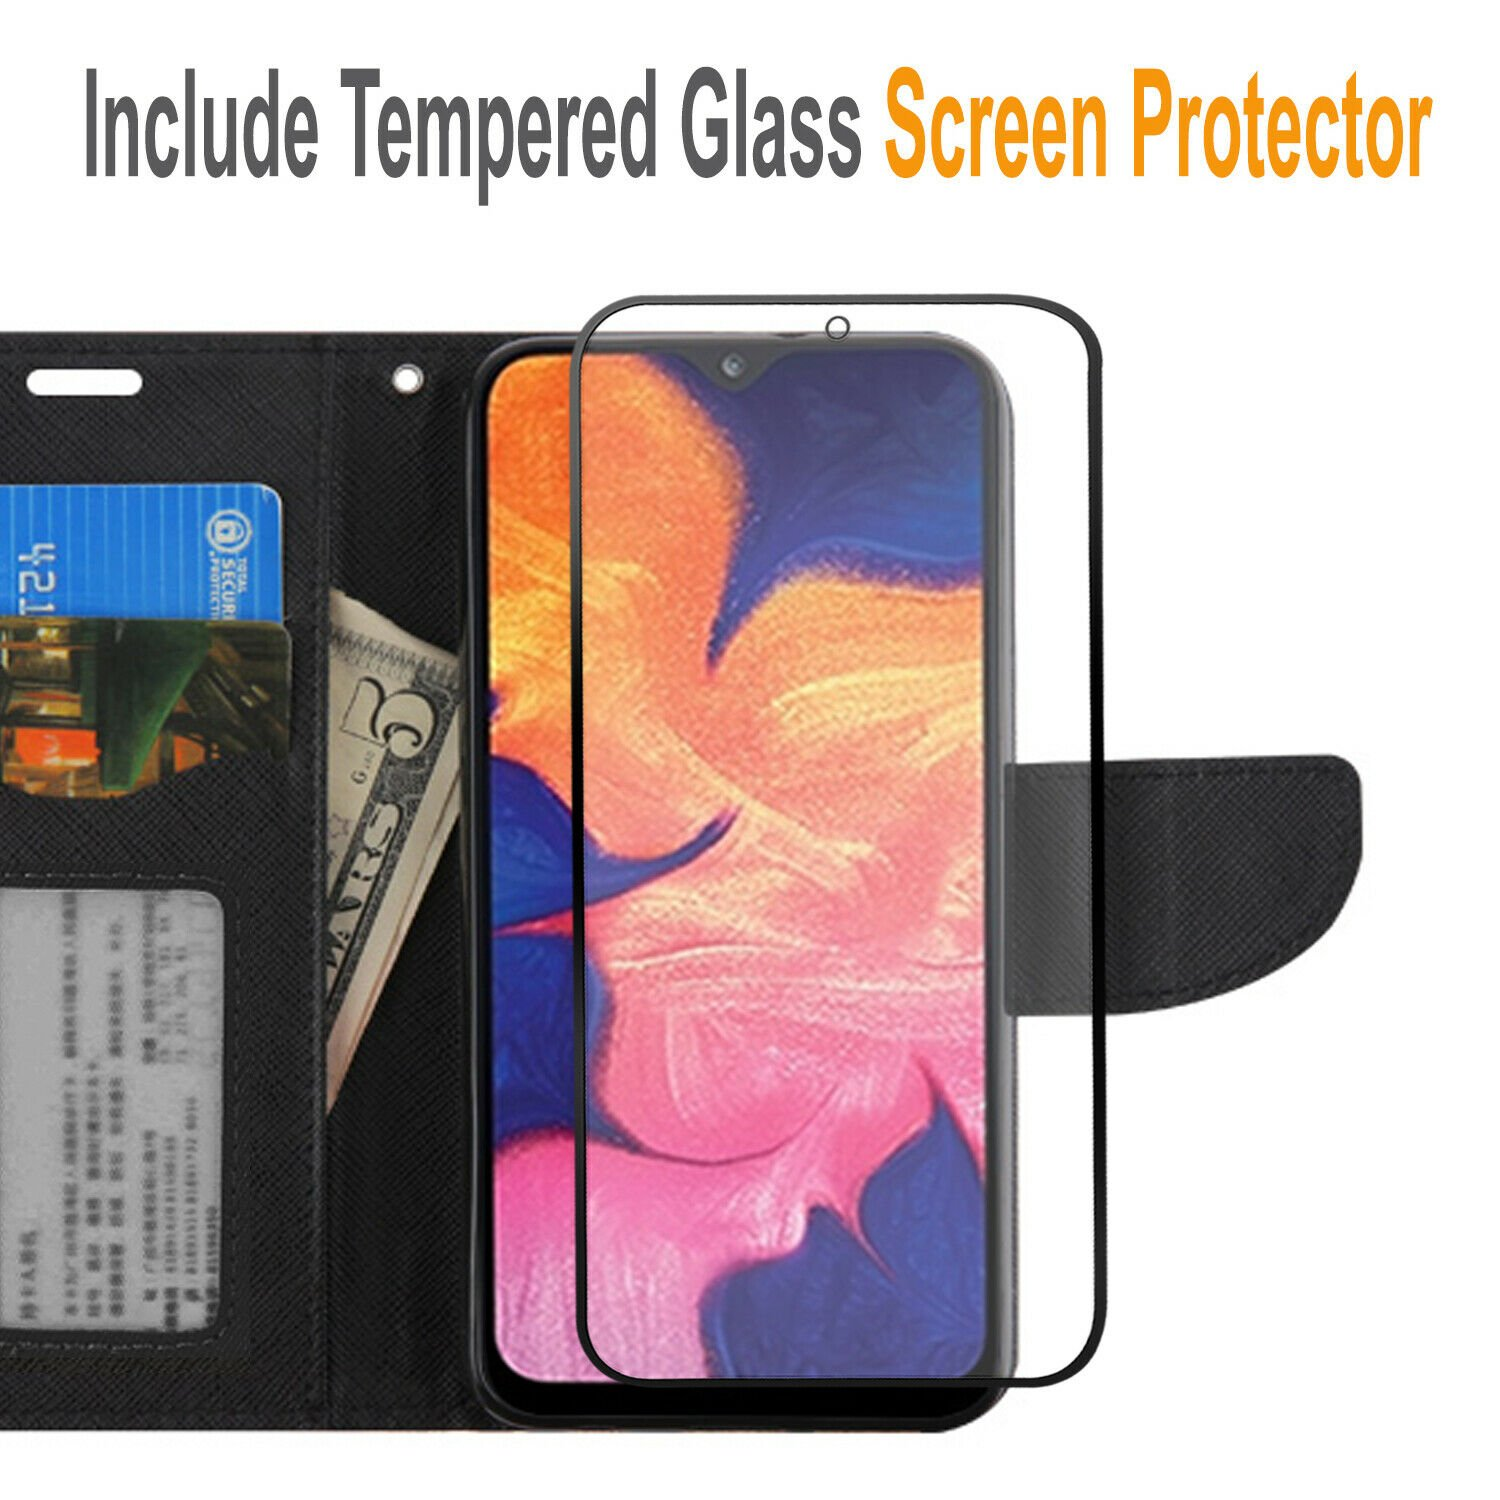 thumbnail 11 - For iPhone 7 / 8 / 7 Plus Case, Premium Wallet Cover + Tempered Glass Protector